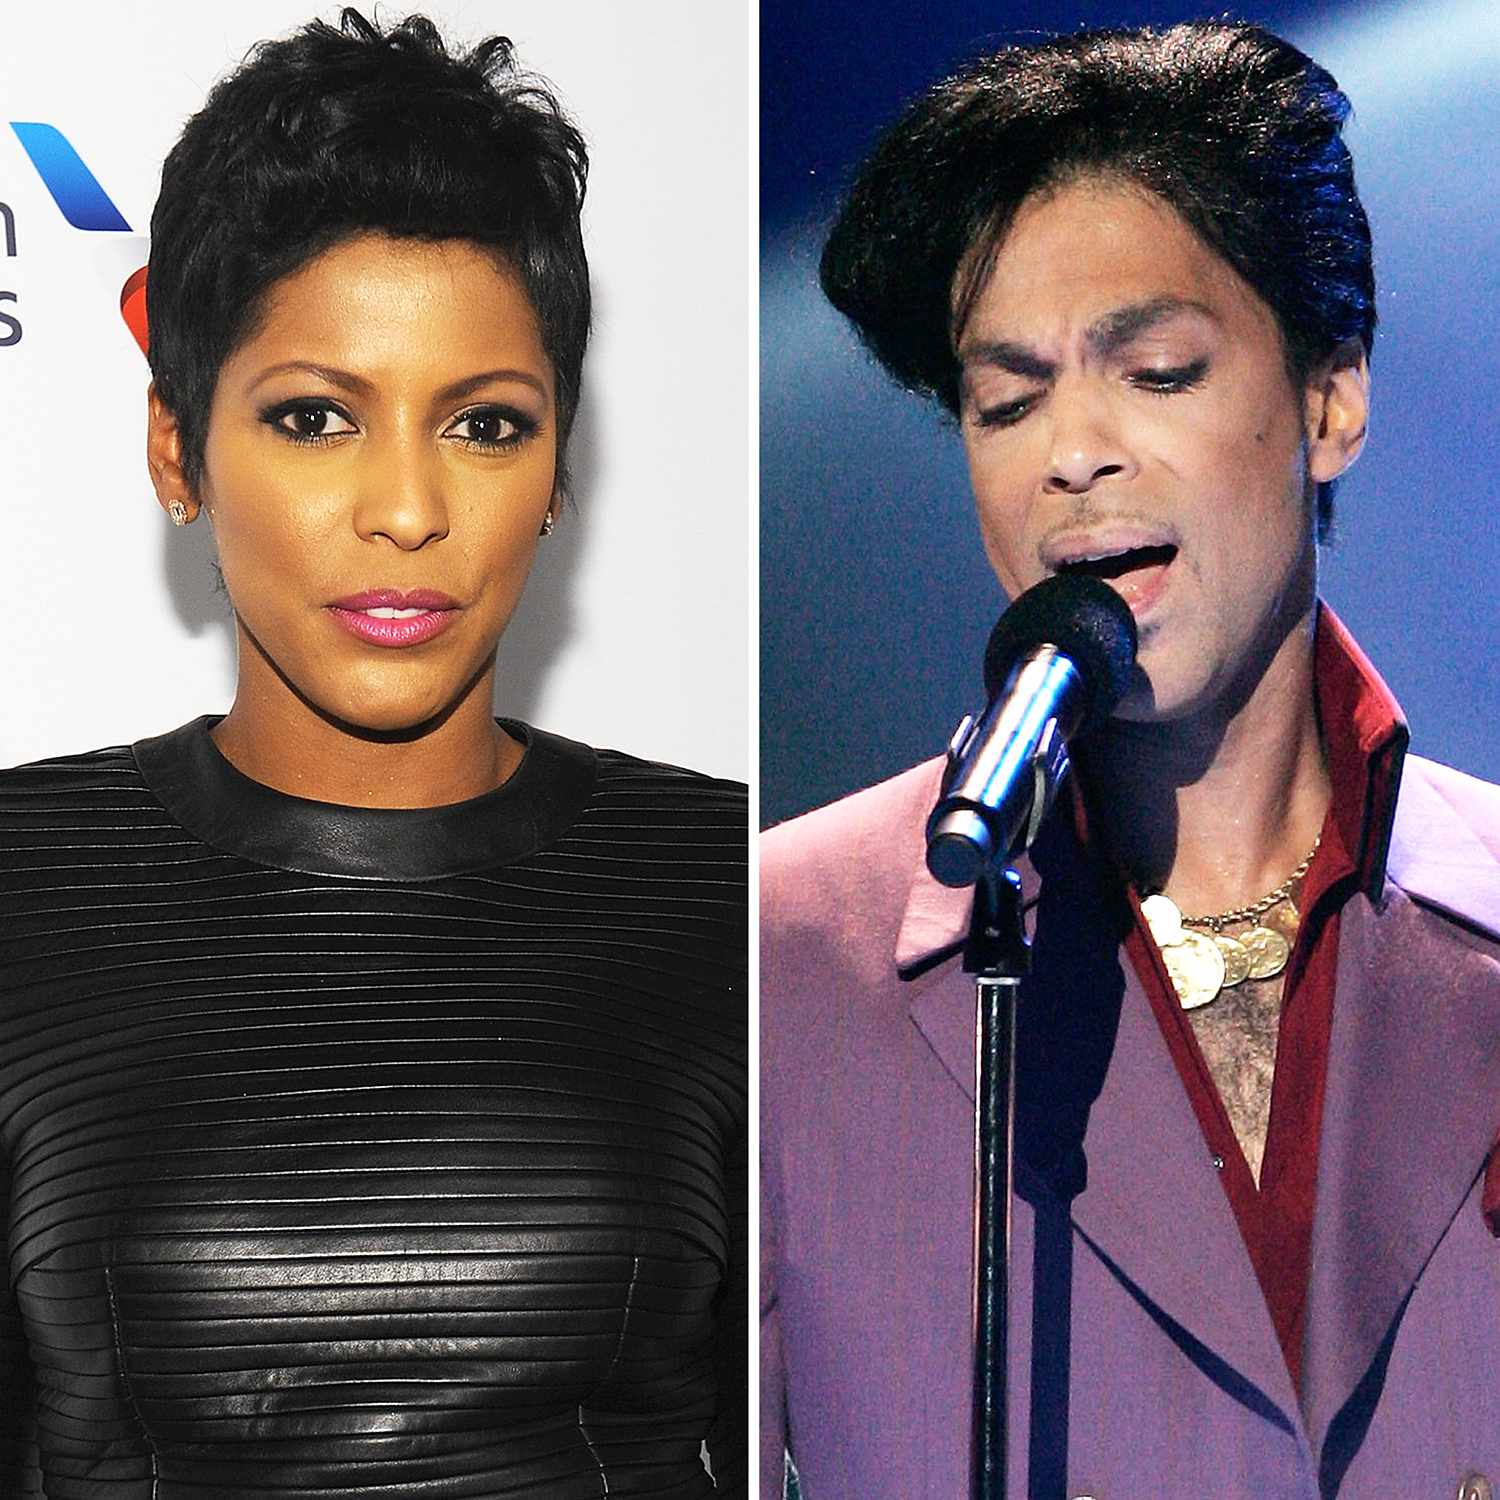 Image result for images of prince and tamron hall